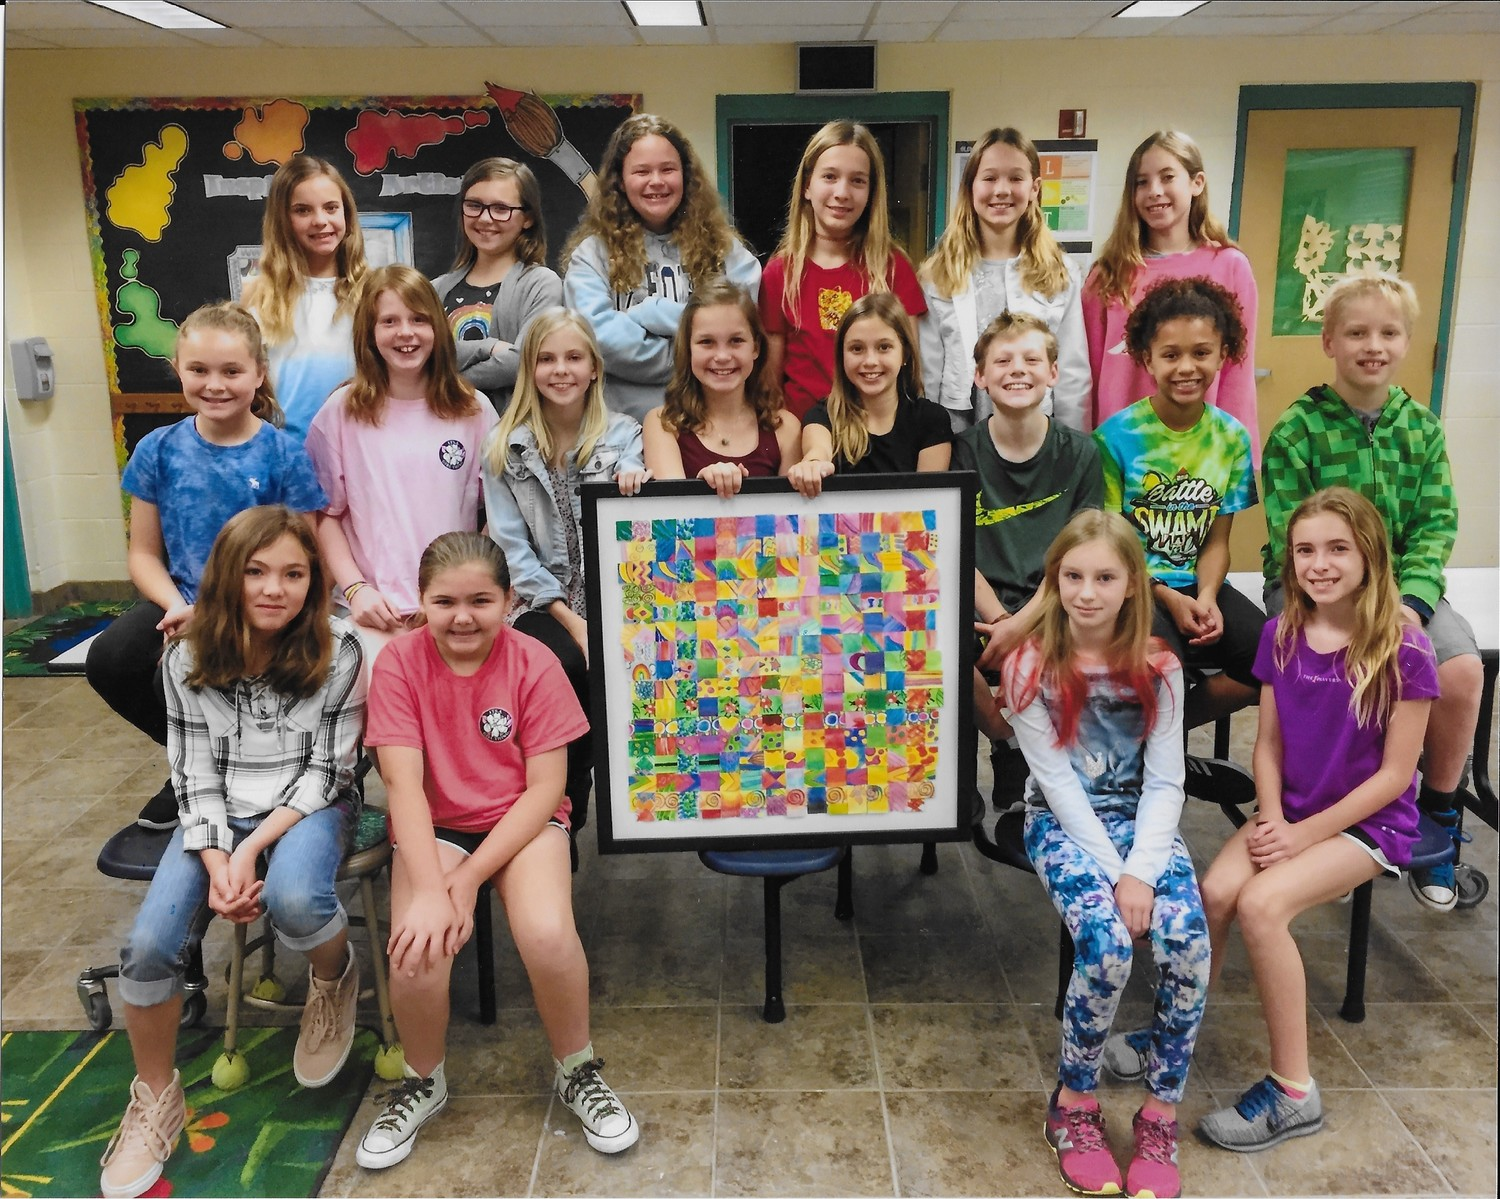 Ocean Palms Elementary students display the work of art they created as a thank you to the Ponte Vedra Public Education Foundation.